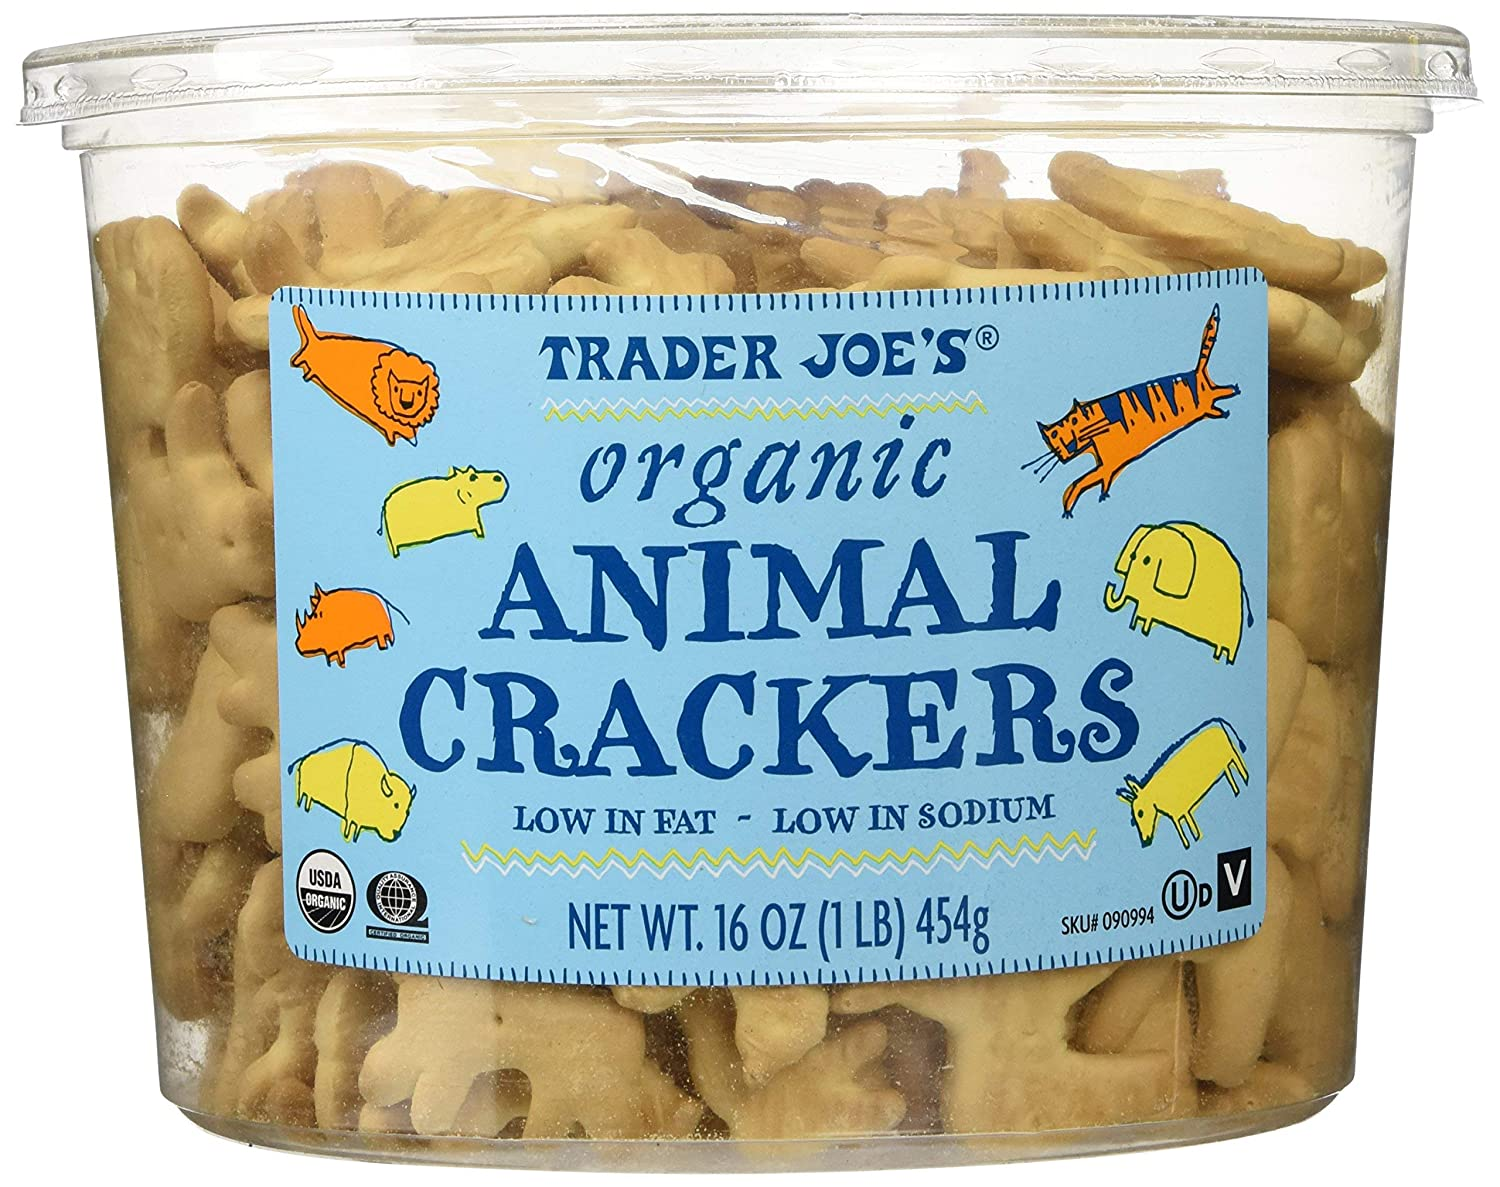 Trader Joes Organic Animal 2 16 Crackers Oz.-set Department store Special price for a limited time